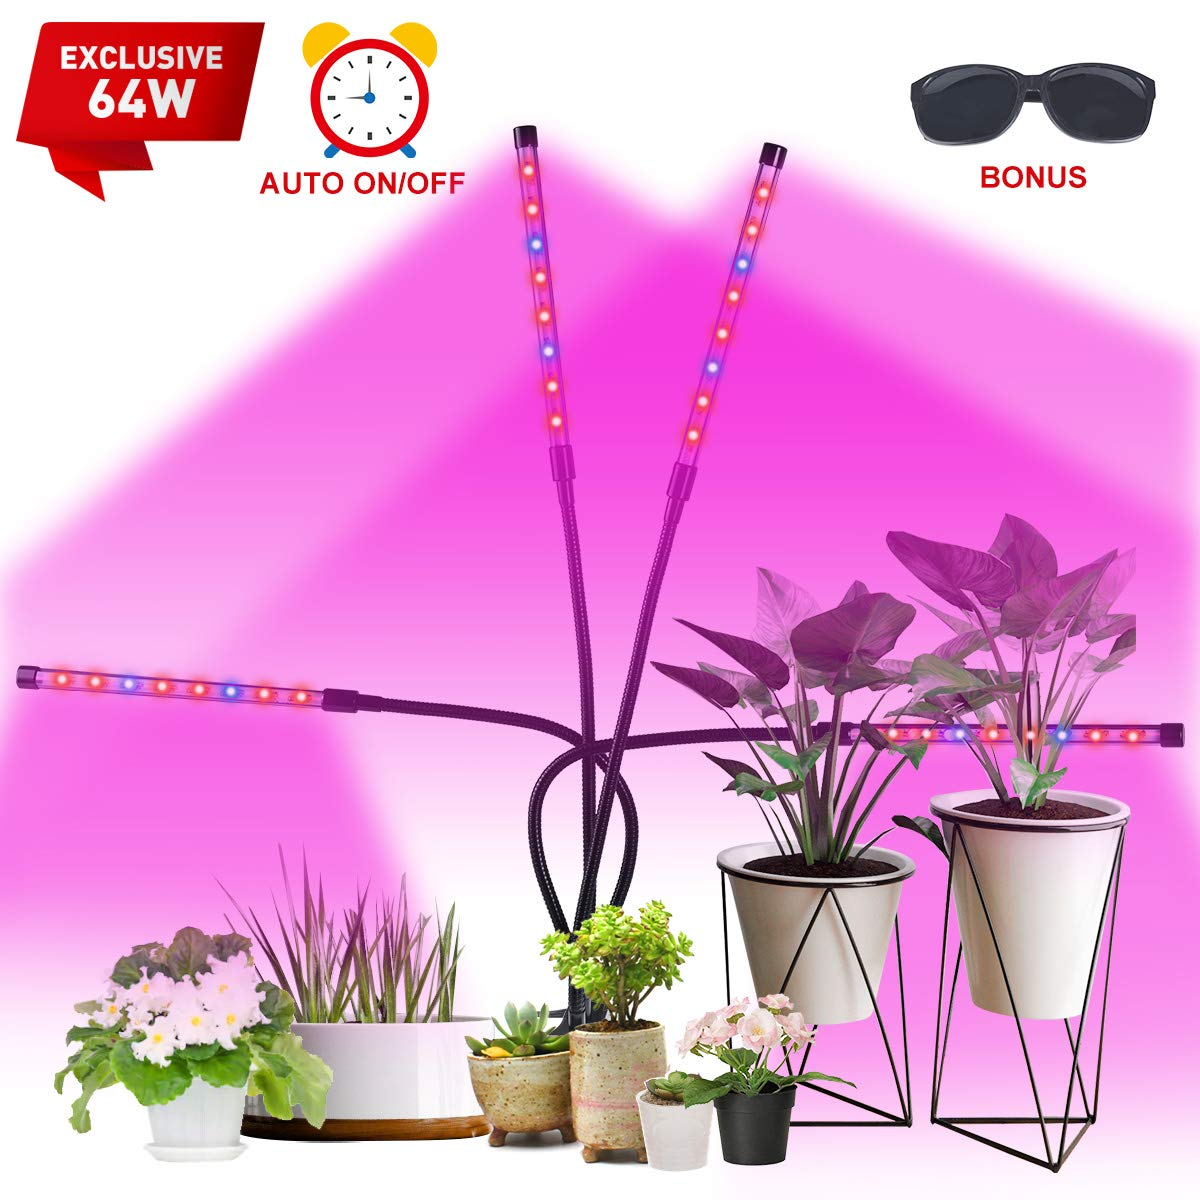 VAZILLIO Led Grow Light, Exclusive 64W 4 Heads Plant Growing Lamp Bulbs Auto ON&Off with 4/8/12 H Timer Improved Clip Thicken Gooseneck for Indoor Plants Veg and Flower